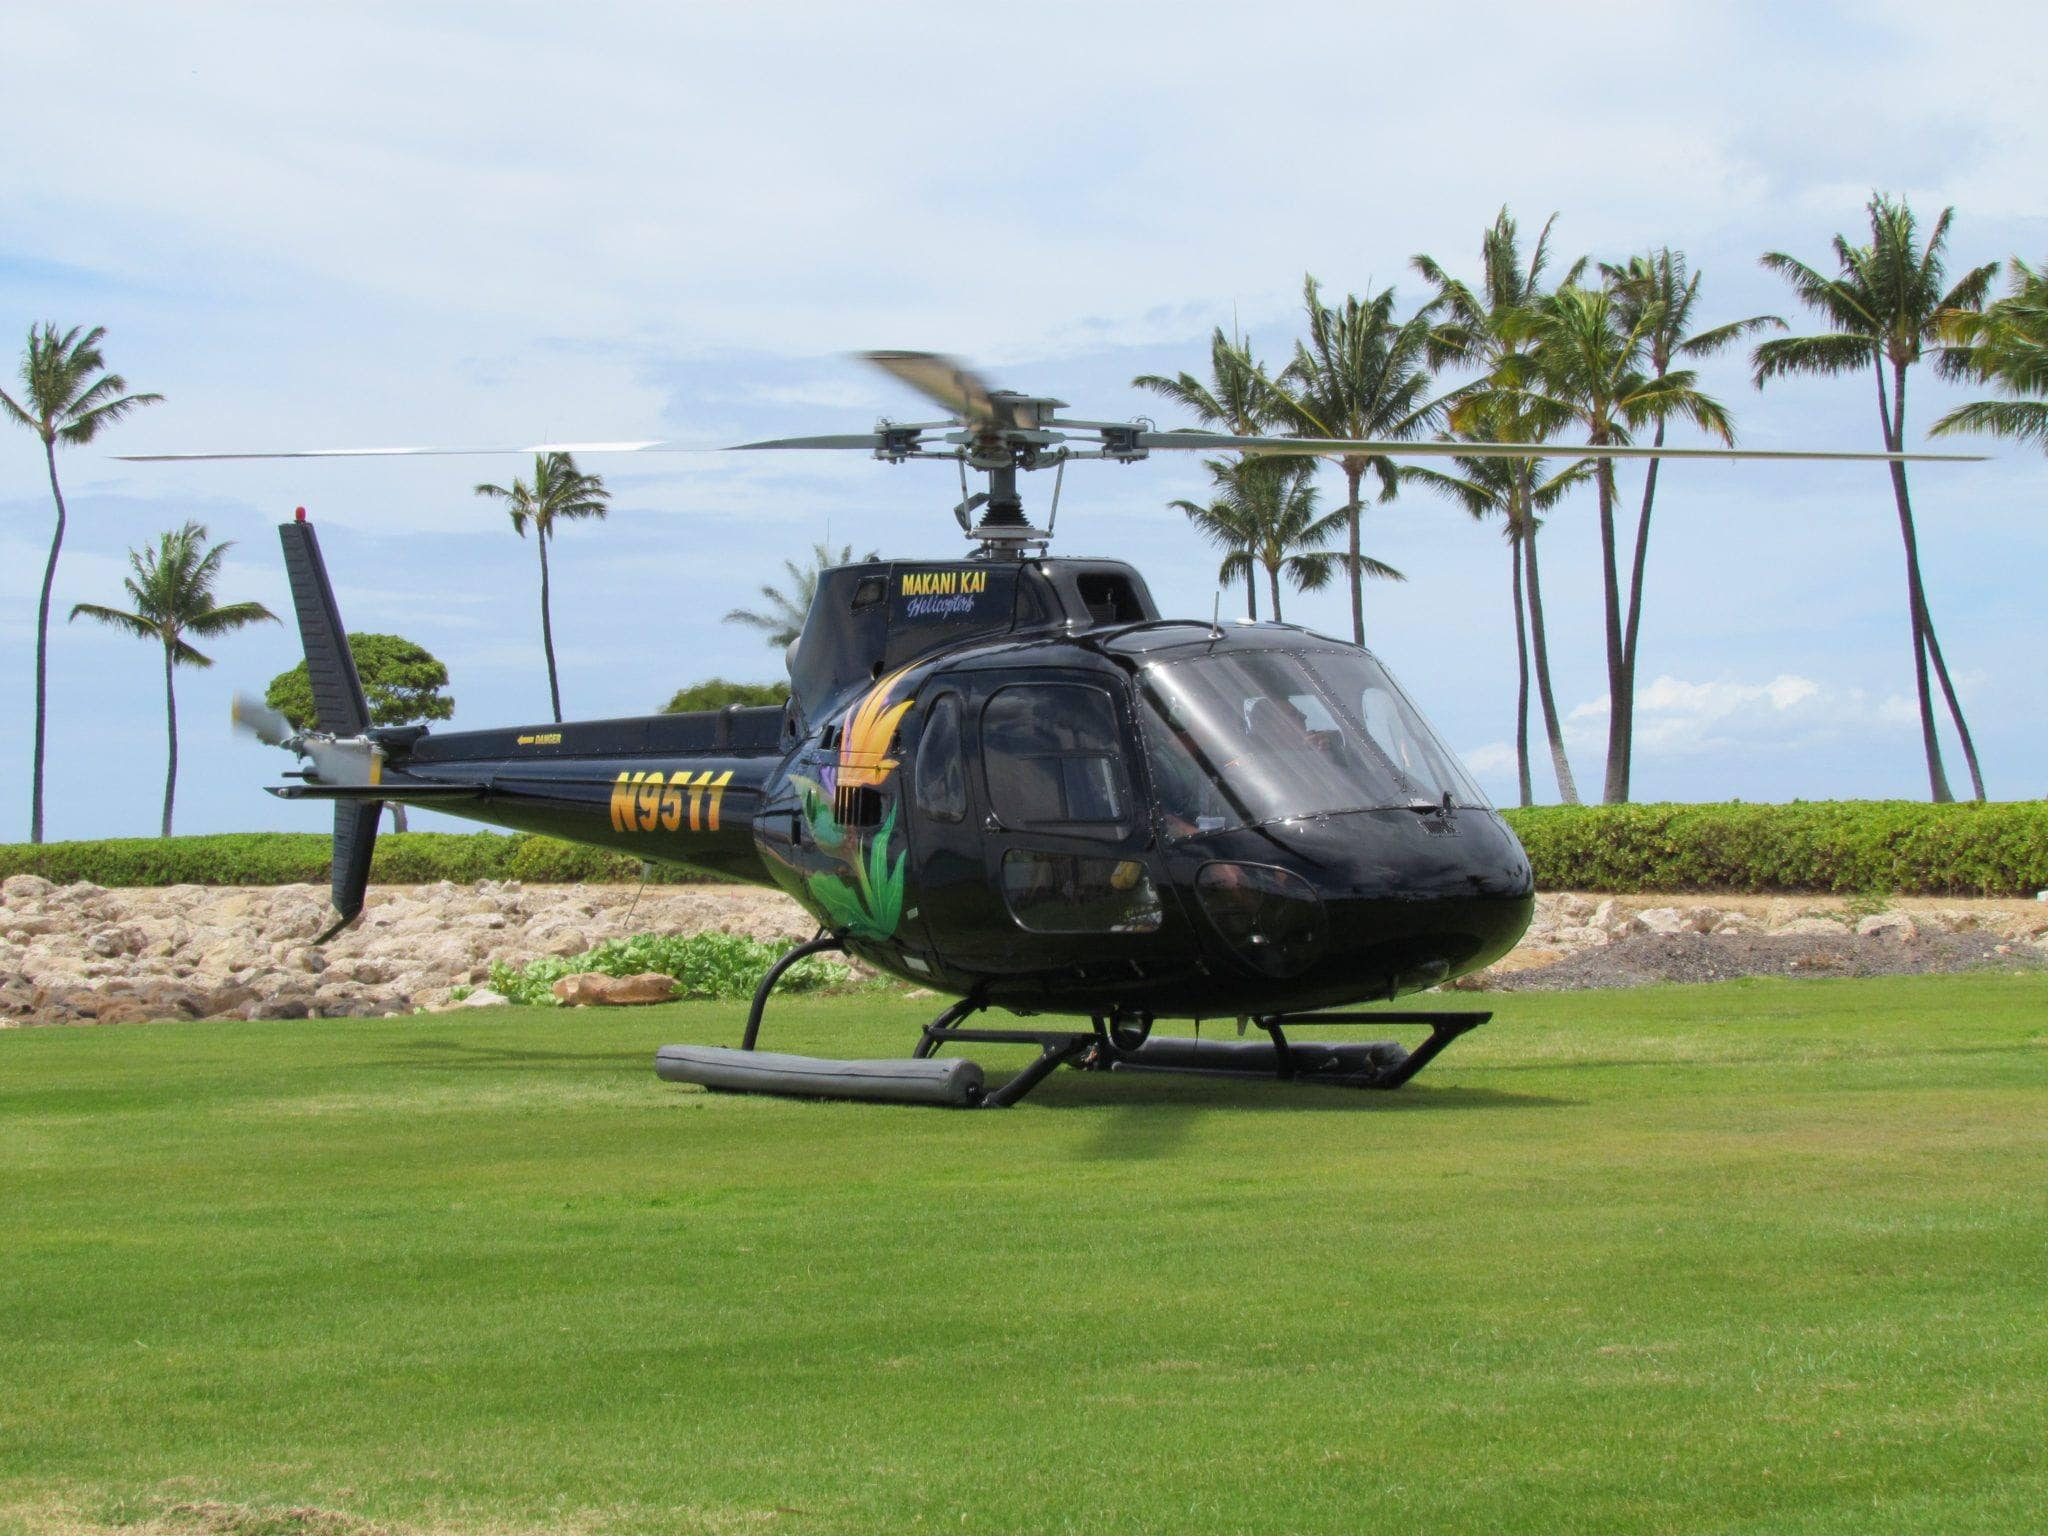 Guests at Aulani can embark on once-in-a-lifetime adventures by land, sea and sky